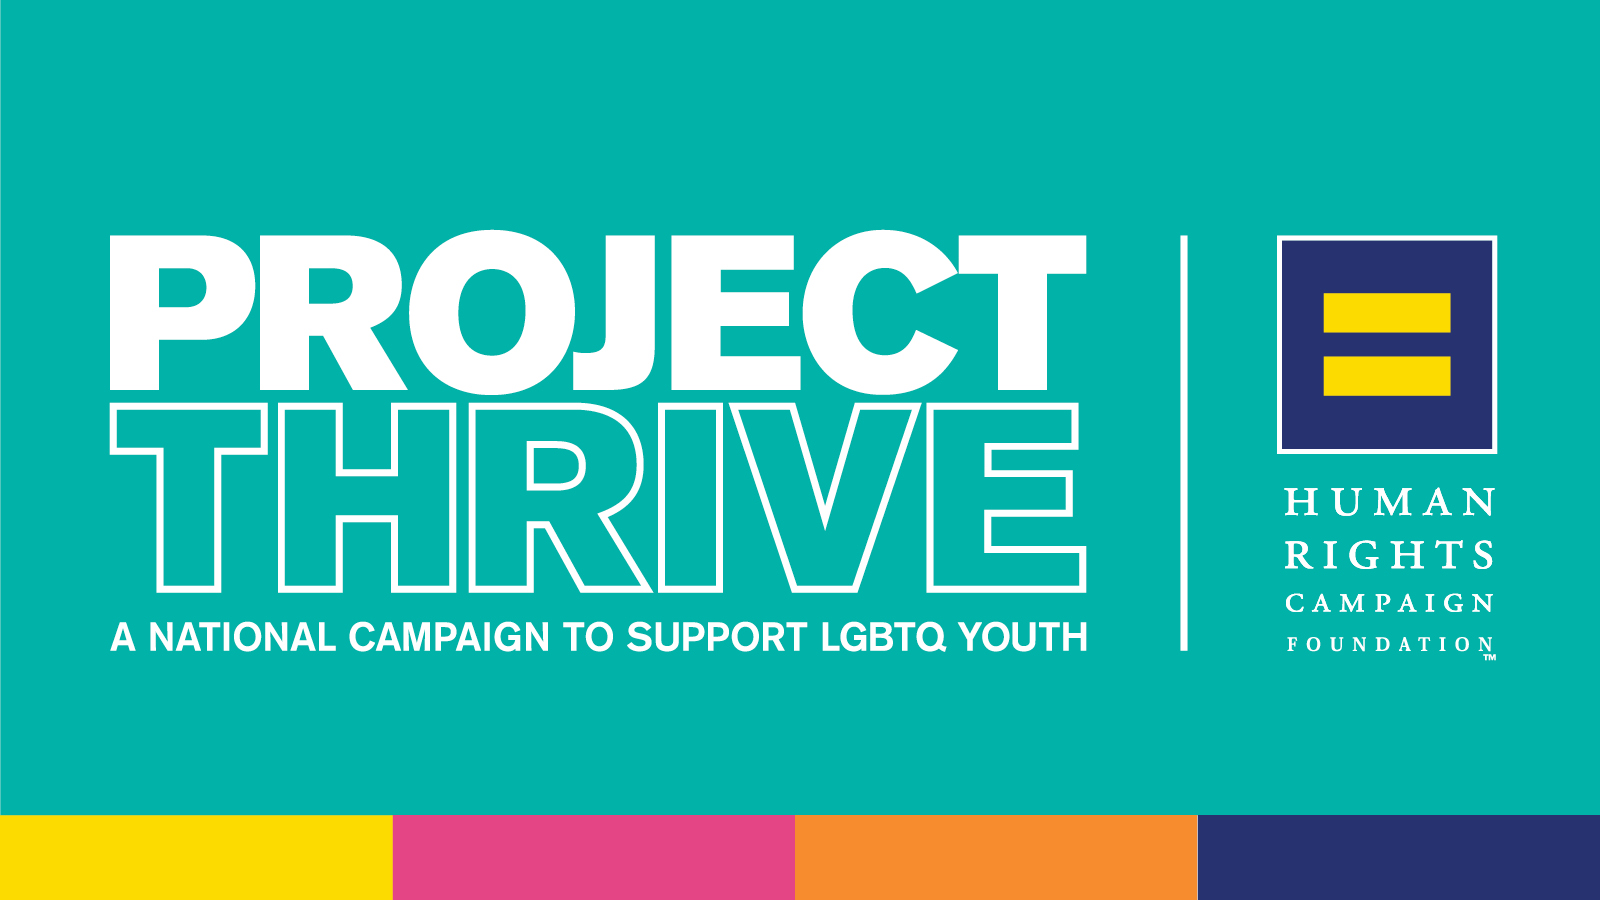 HRC Foundation and National Partners Launch Project THRIVE